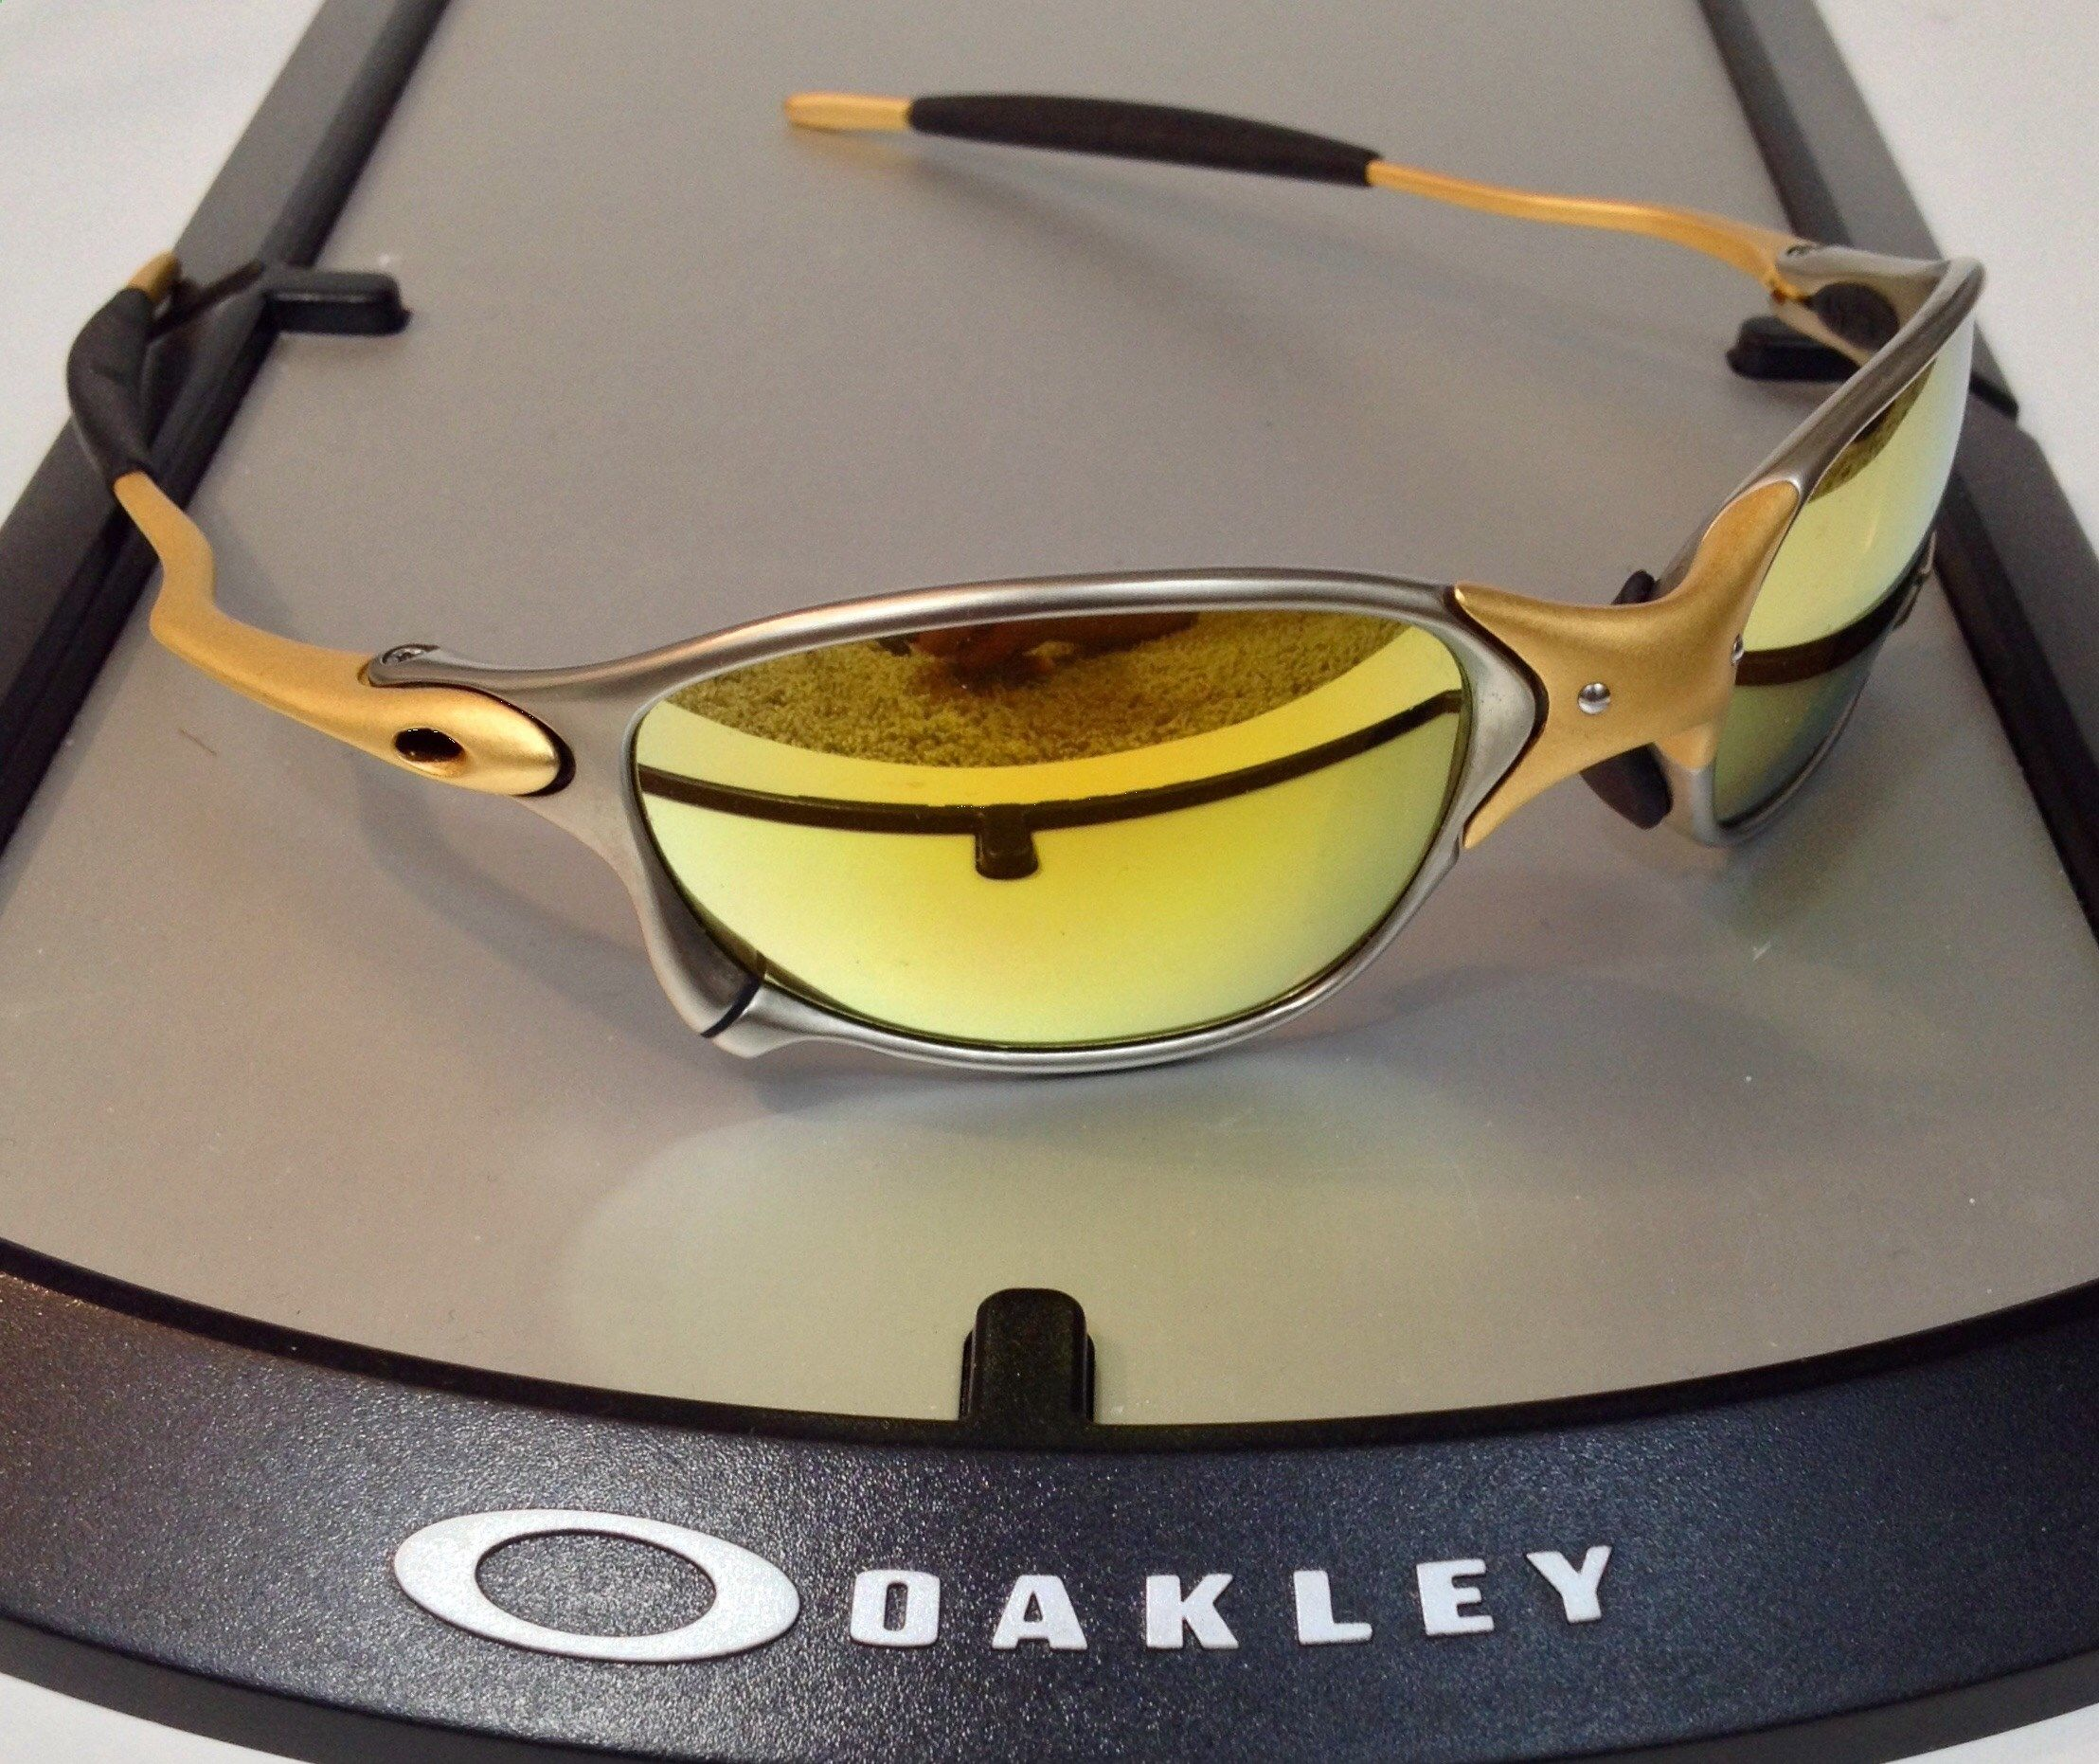 e1d54bf66fa90 See the full 24K XX Oakley Collection here  www.oakleyforum.c ...